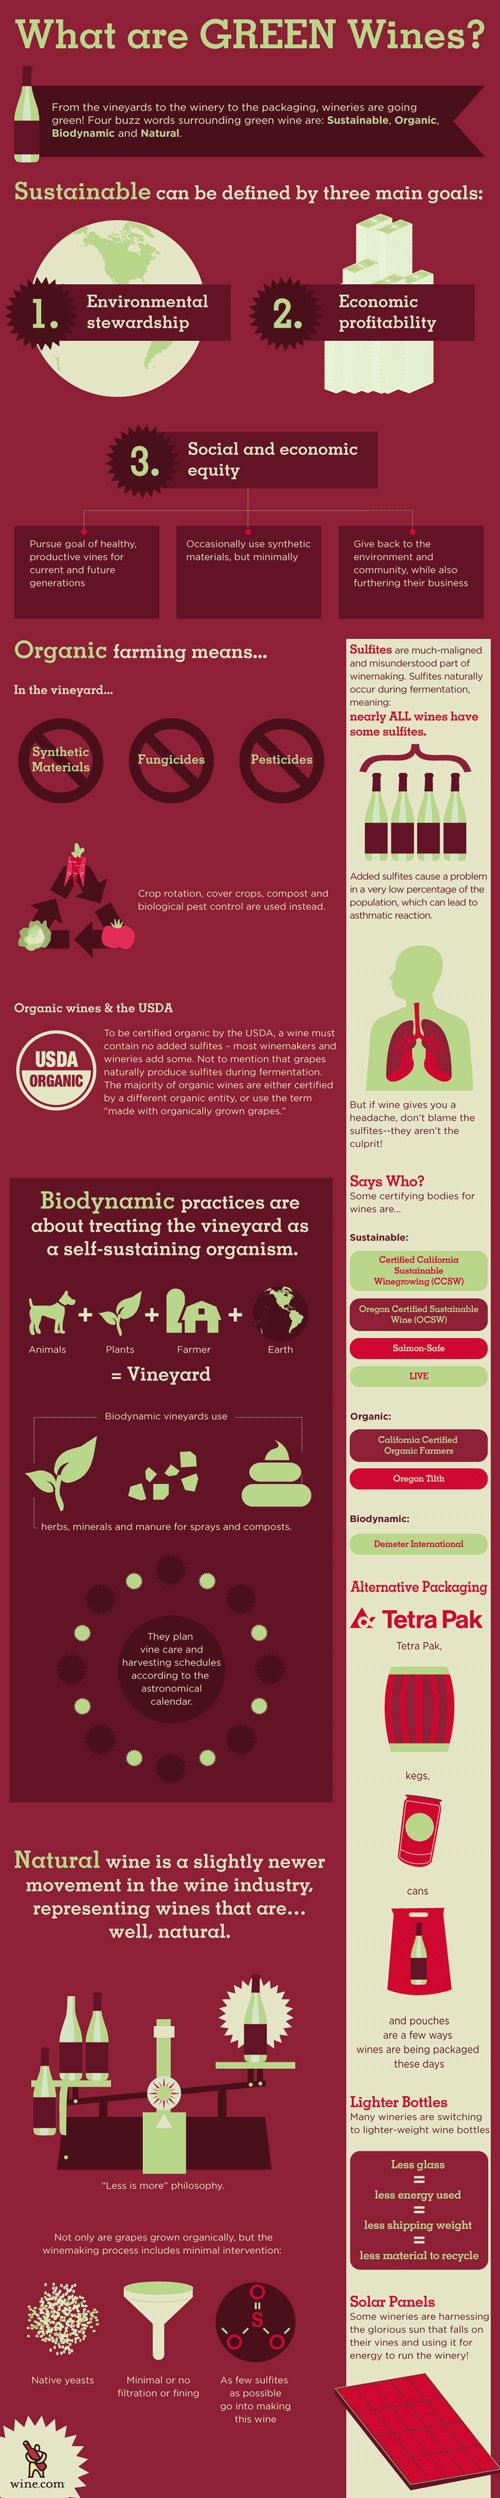 What are green wines? check out our infographic to learn more!